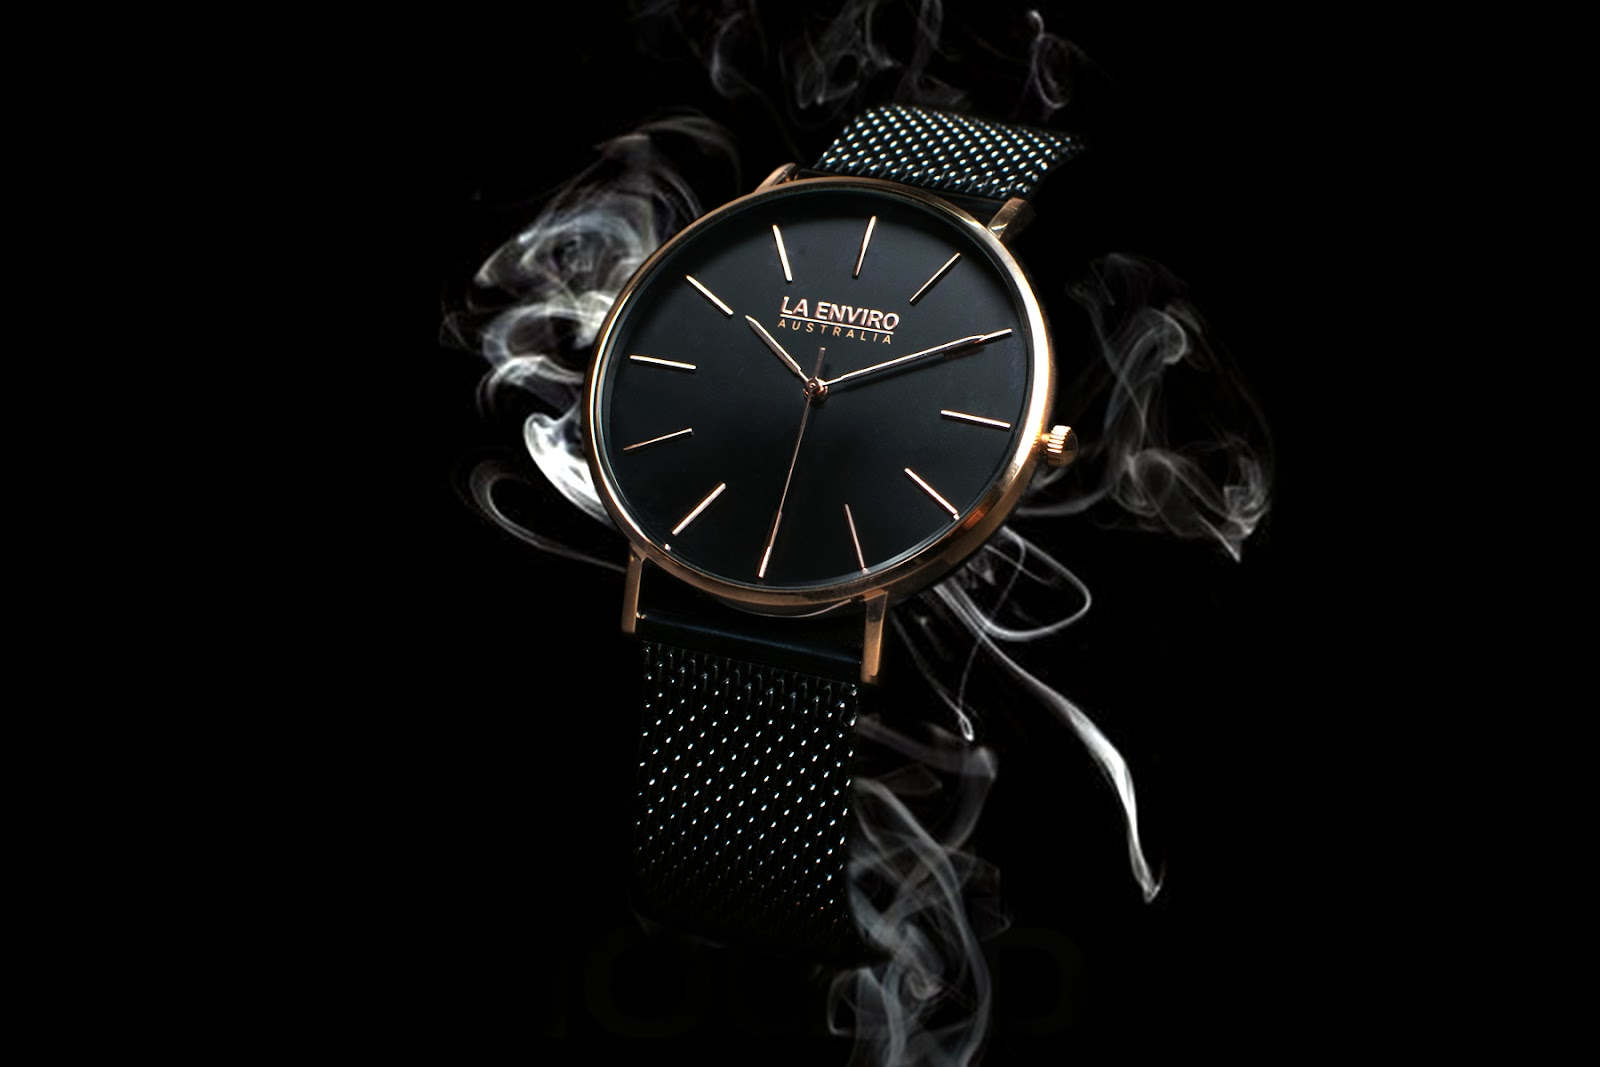 Unisex Watch sold through the company La Enviro